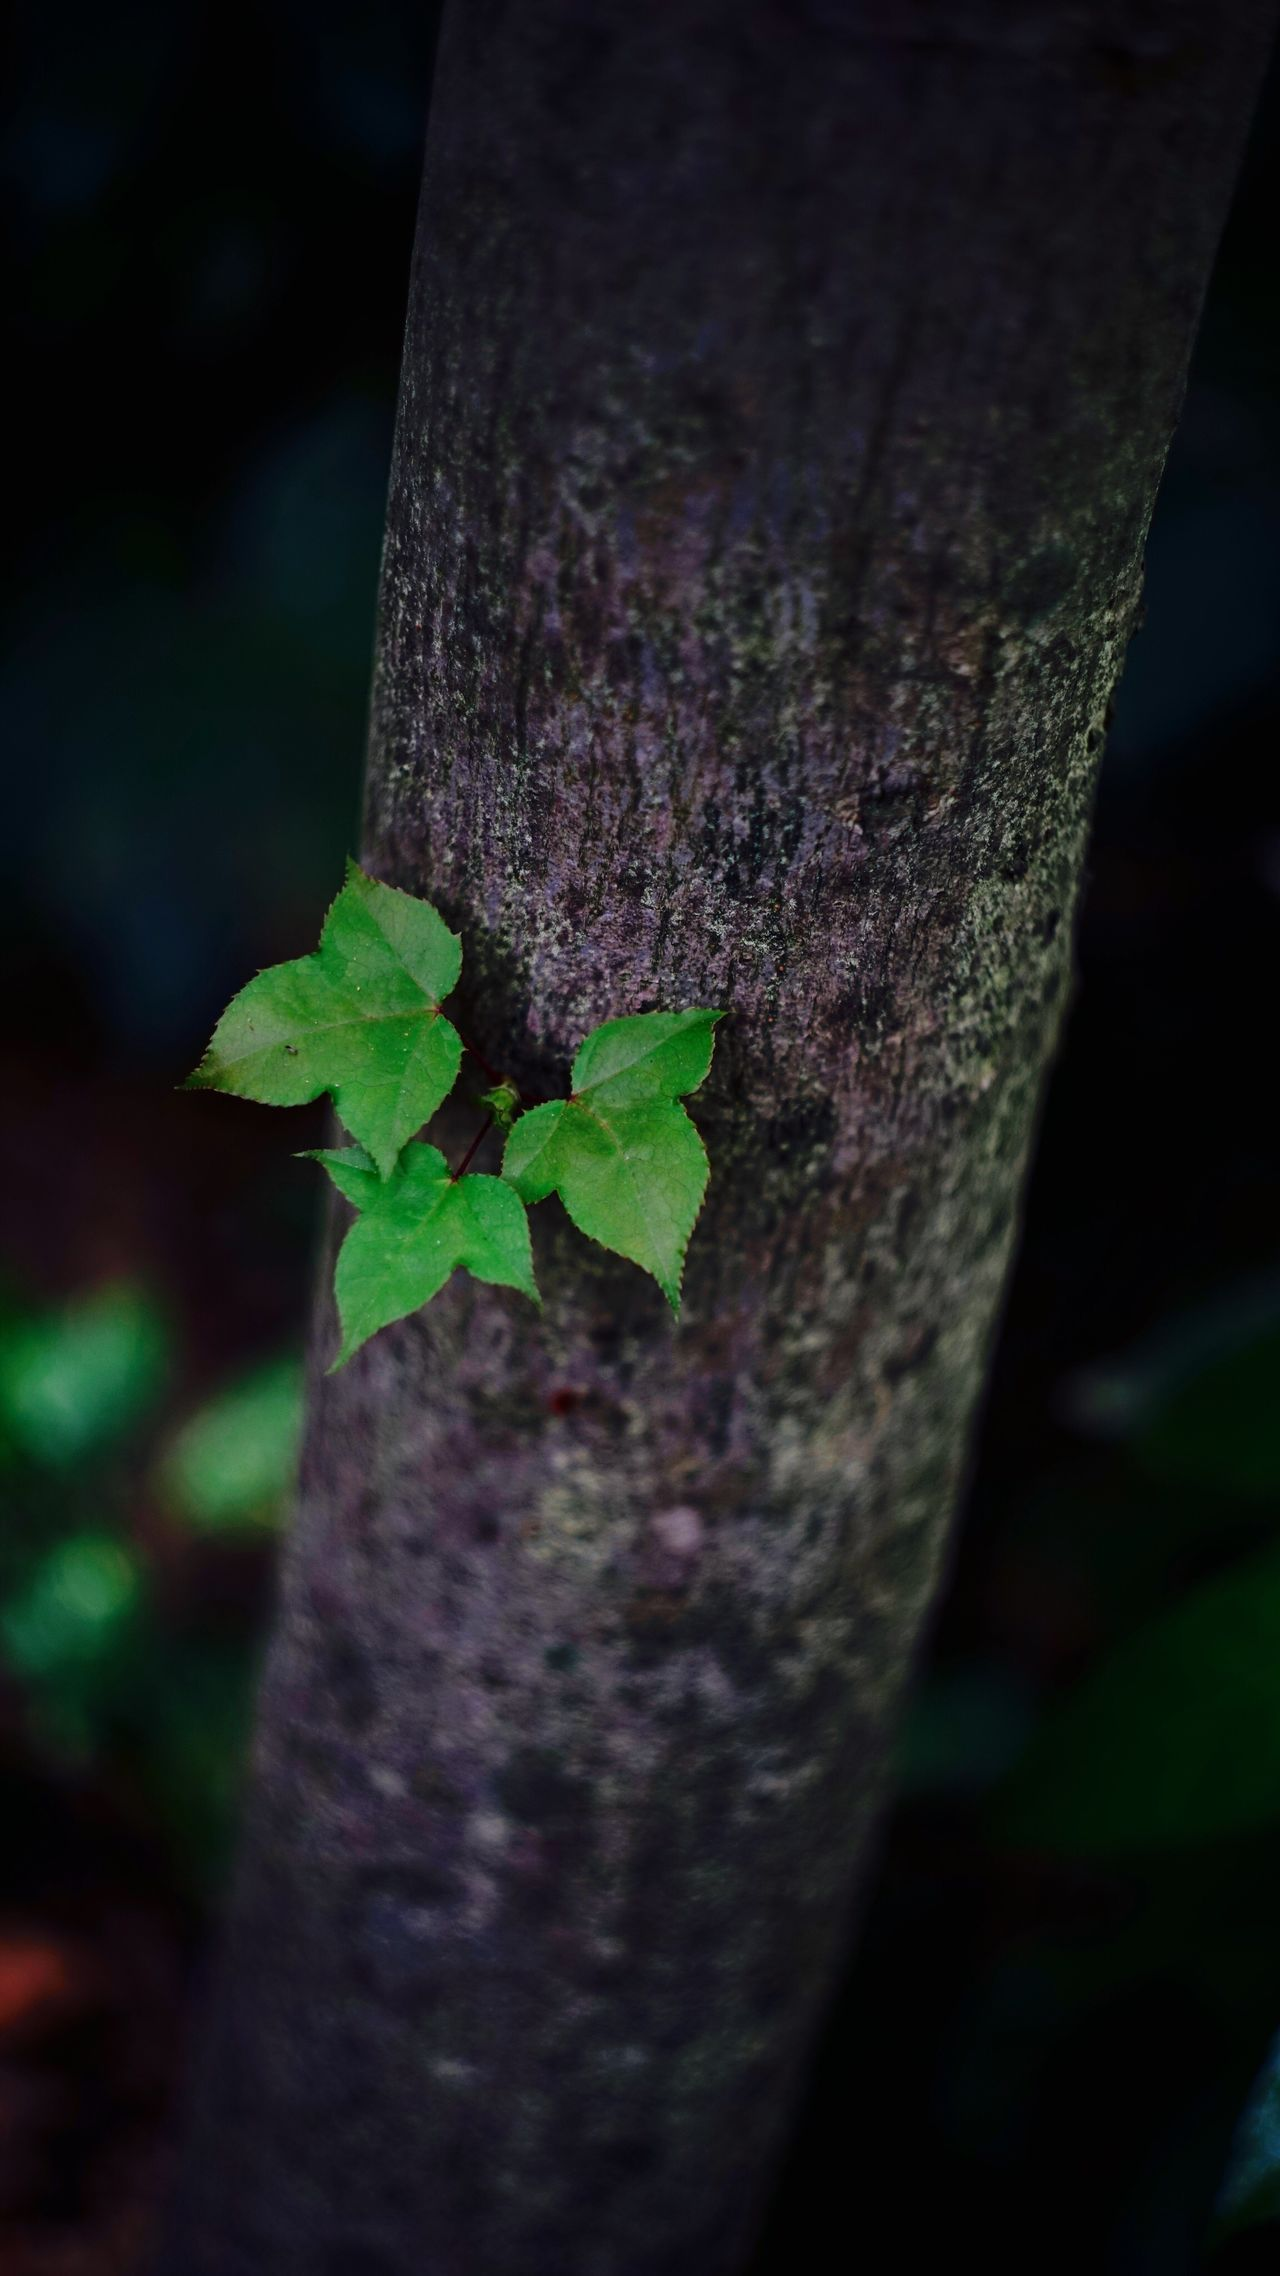 Close-up Tree Trunk Nature No People Leaf Growth Outdoors Green Color Focus On Foreground Tree Beauty In Nature Animal Themes